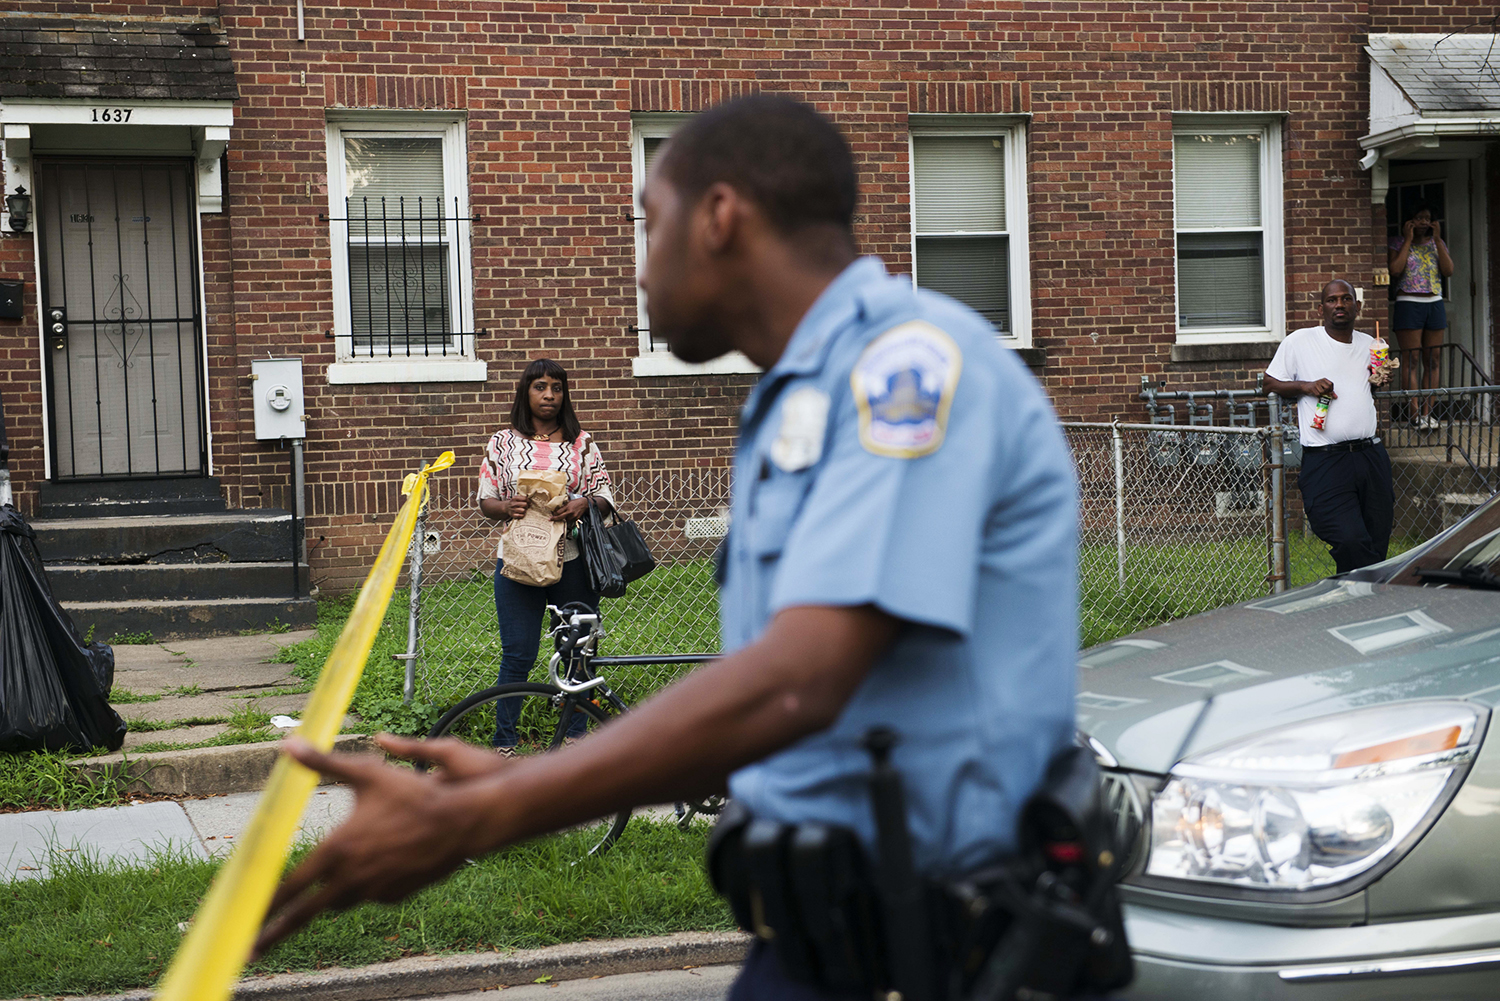 WASHINGTON, DC - JULY 8:  Neighbors linger near the scene of where  7 year-old son, Michael Kingsbury's body was, was found on Monday July 8, 2013 in Washington, D.C.  The young boy was found after several days of searching in a parked vehicle near the families home on the 1700 block of West Virginia ave NE.  (Photo by Amanda Voisard/For the Washington Post)